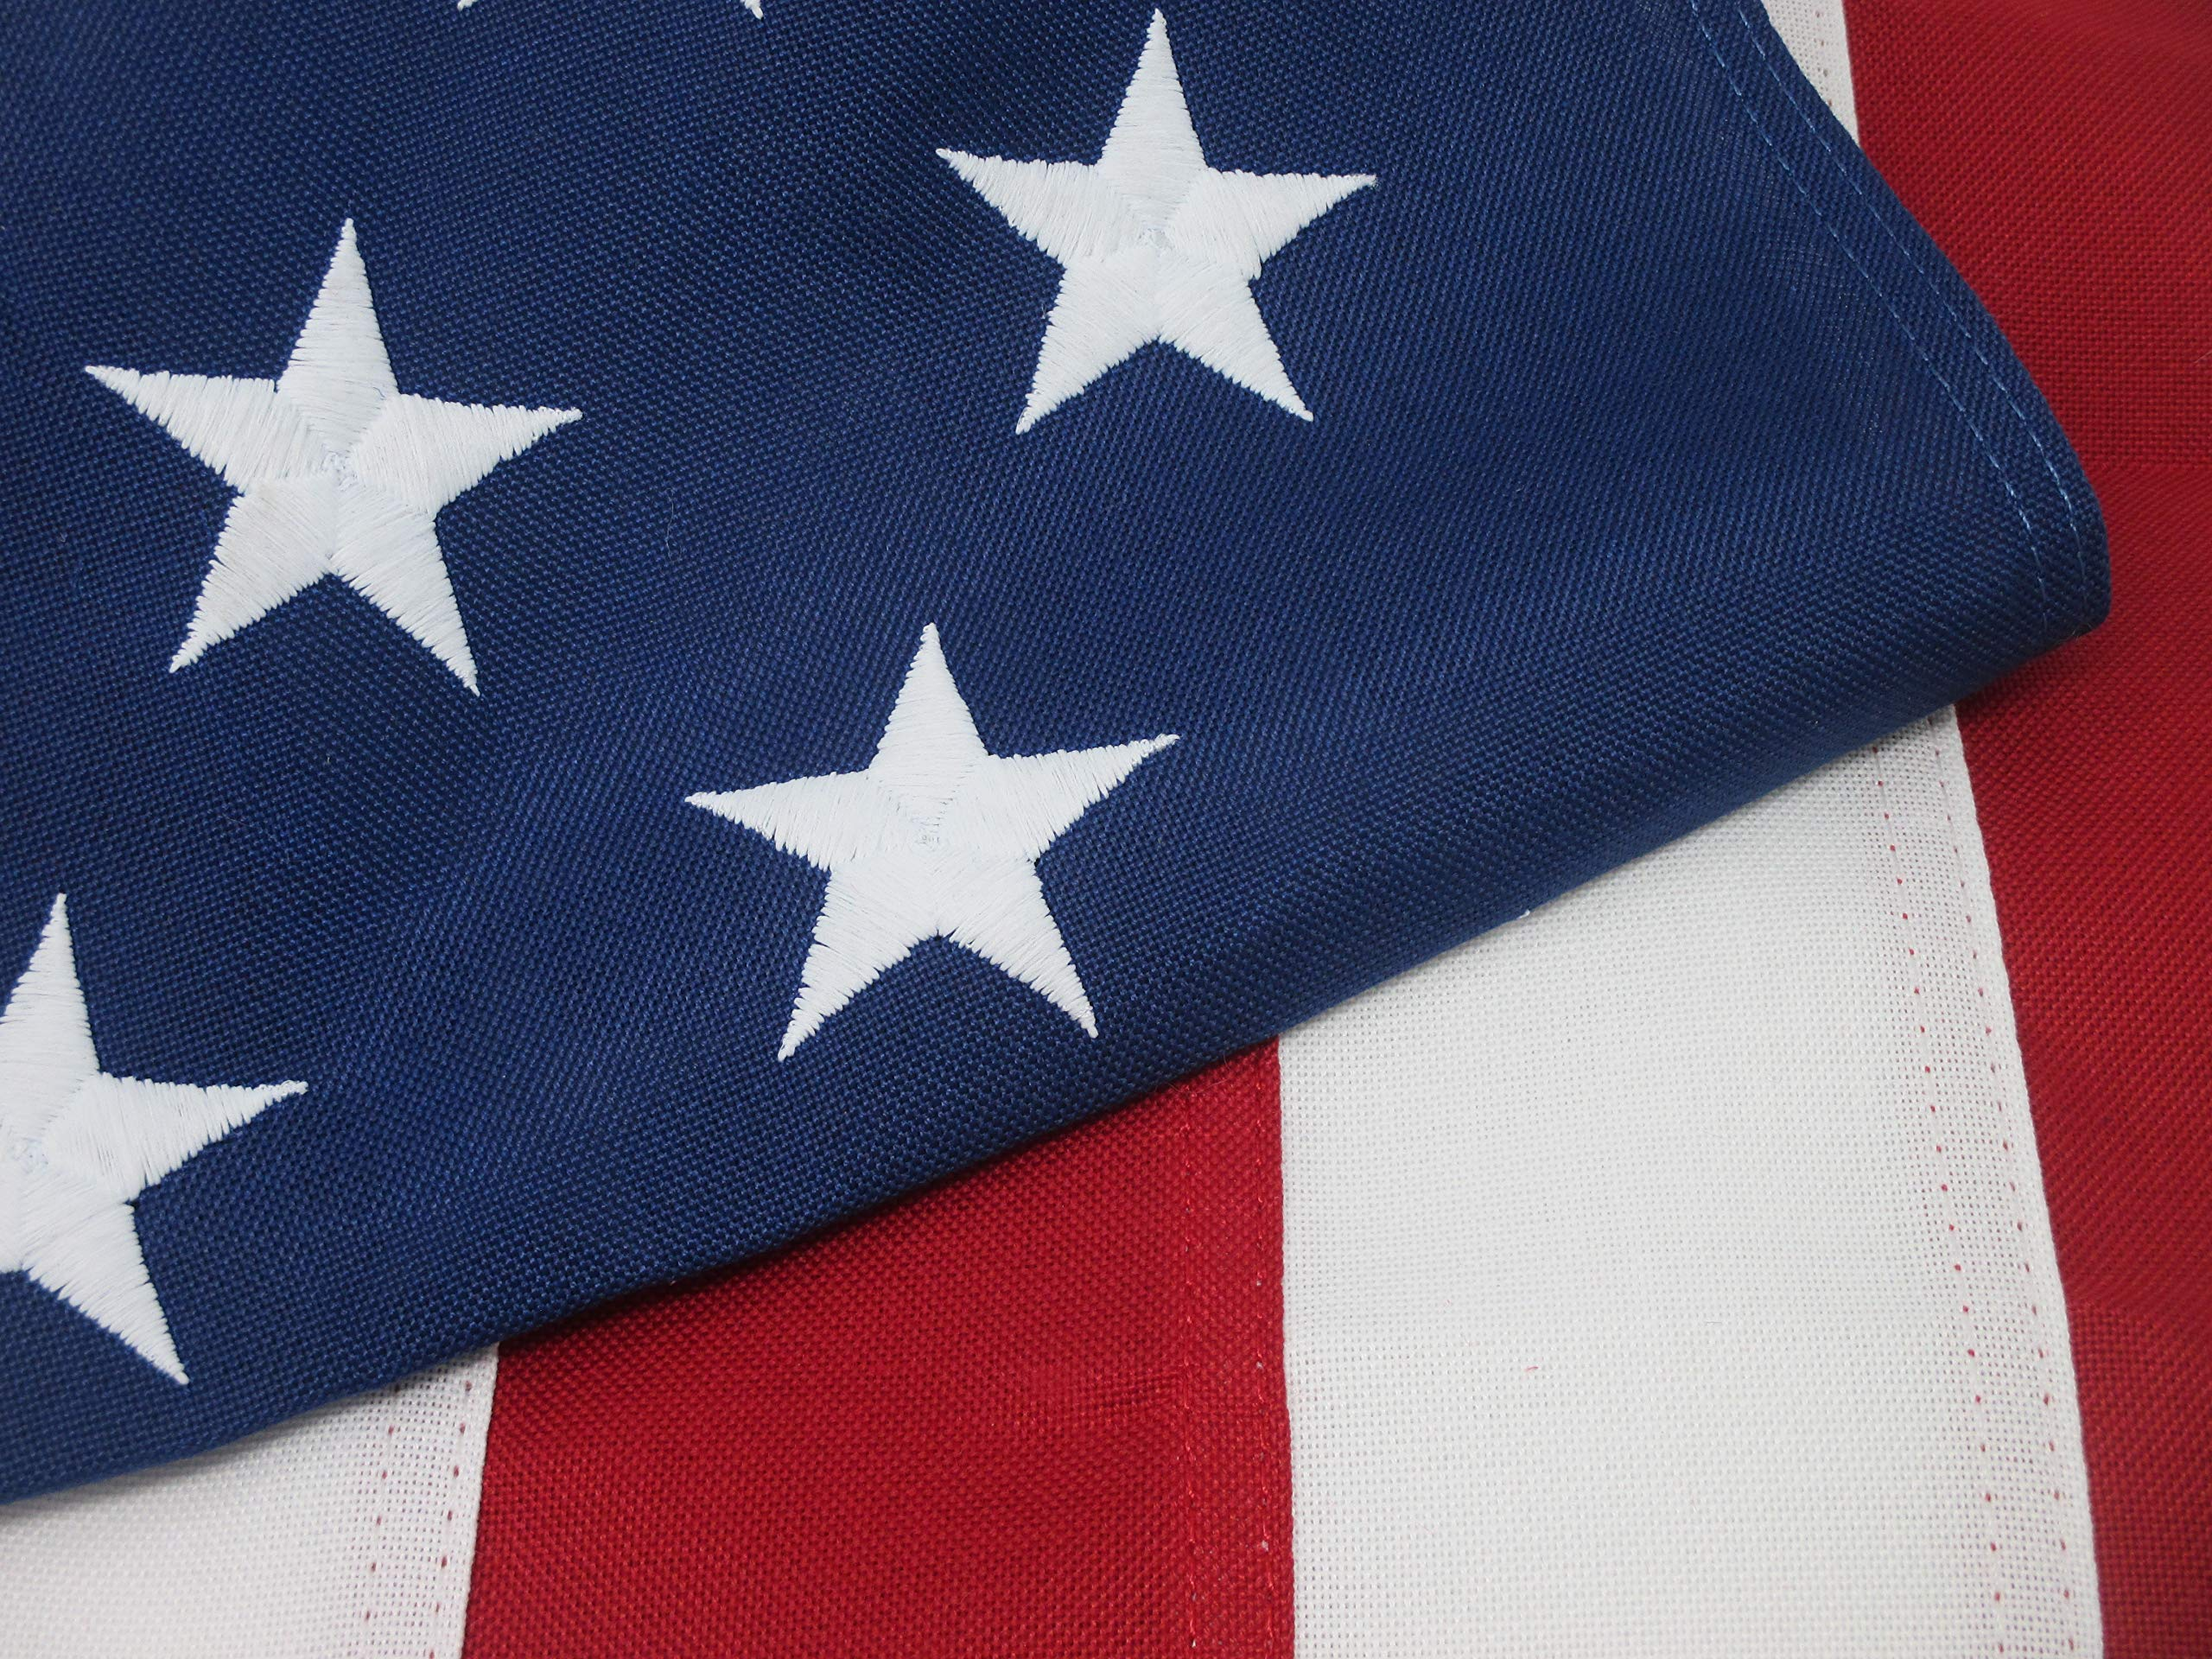 American Flag Heavy Duty 6x10 Premium Commercial Grade 2 ply PolyMax Polyester The Best US Flag 100% Made in USA Tough Durable Fade Resistant All Weather Sewn Stripes Embroidered Stars (6 by 10 Foot)